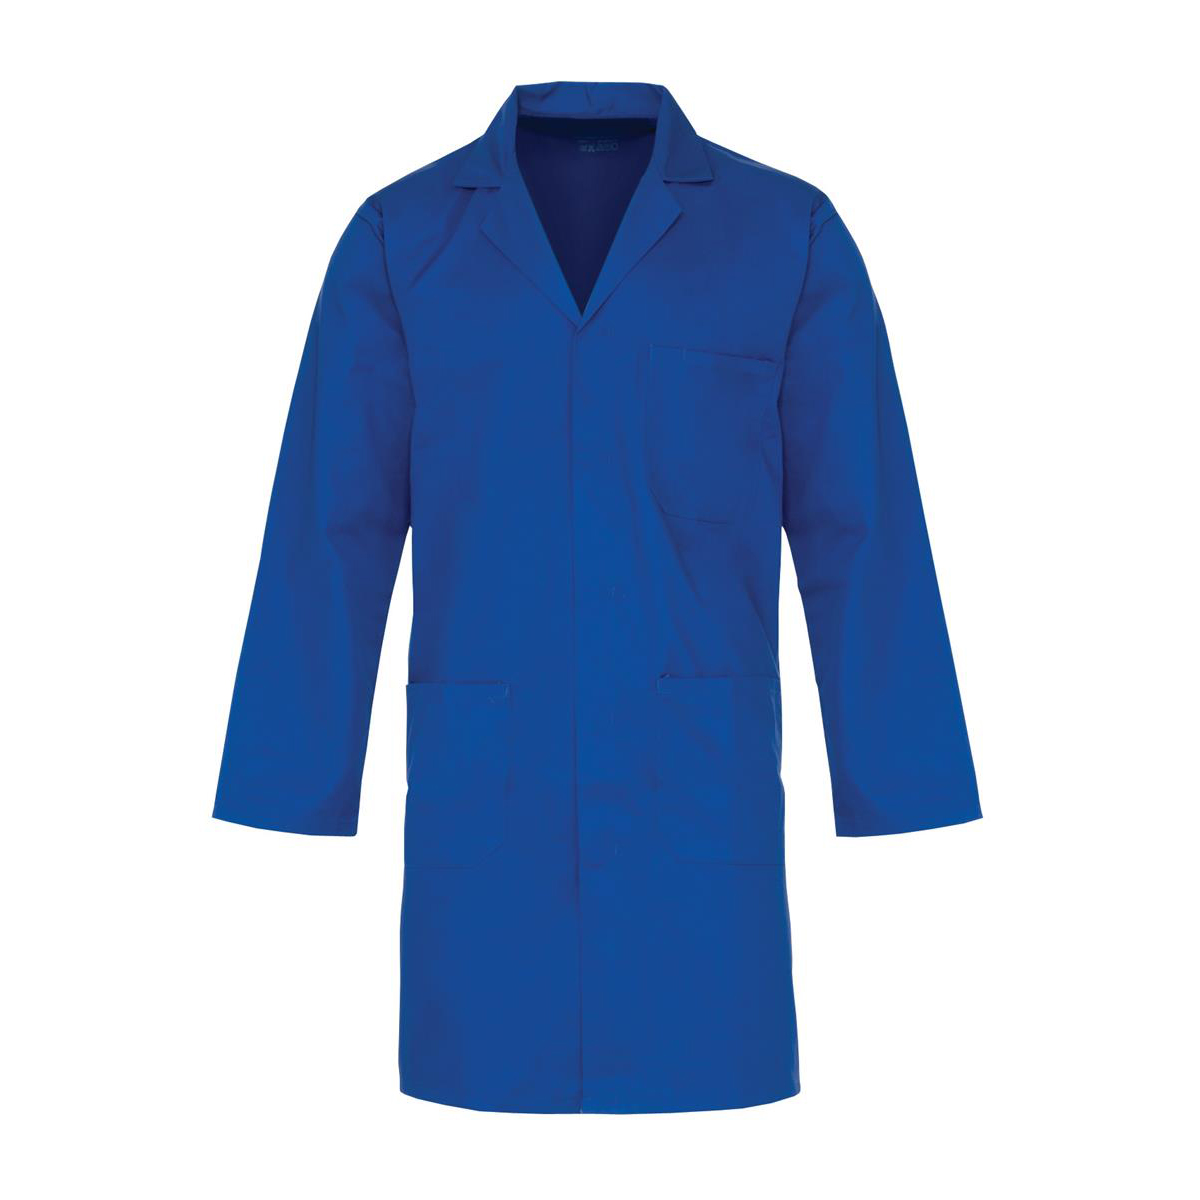 Safety Click Lab Coat Polycotton with 3 Pockets Extra Large Navy Ref PCWCN48 *Approx 3 Day Leadtime*